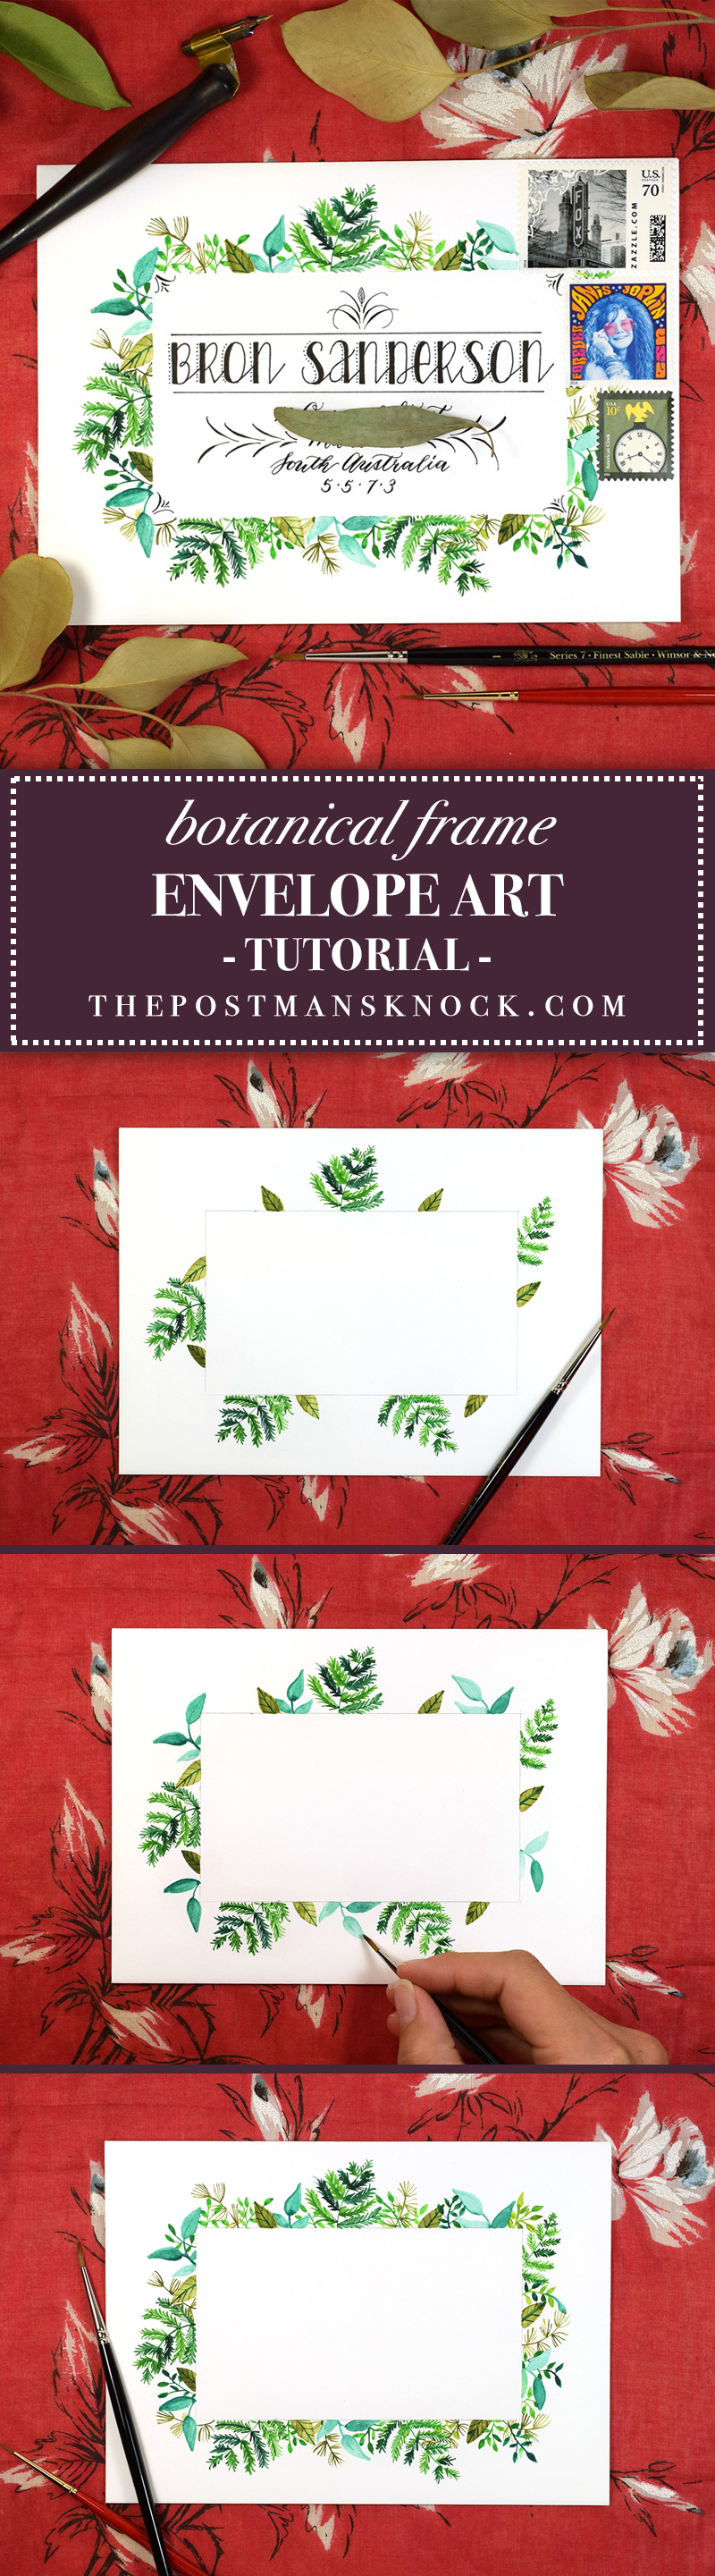 Botanical Frame Envelope Art Tutorial